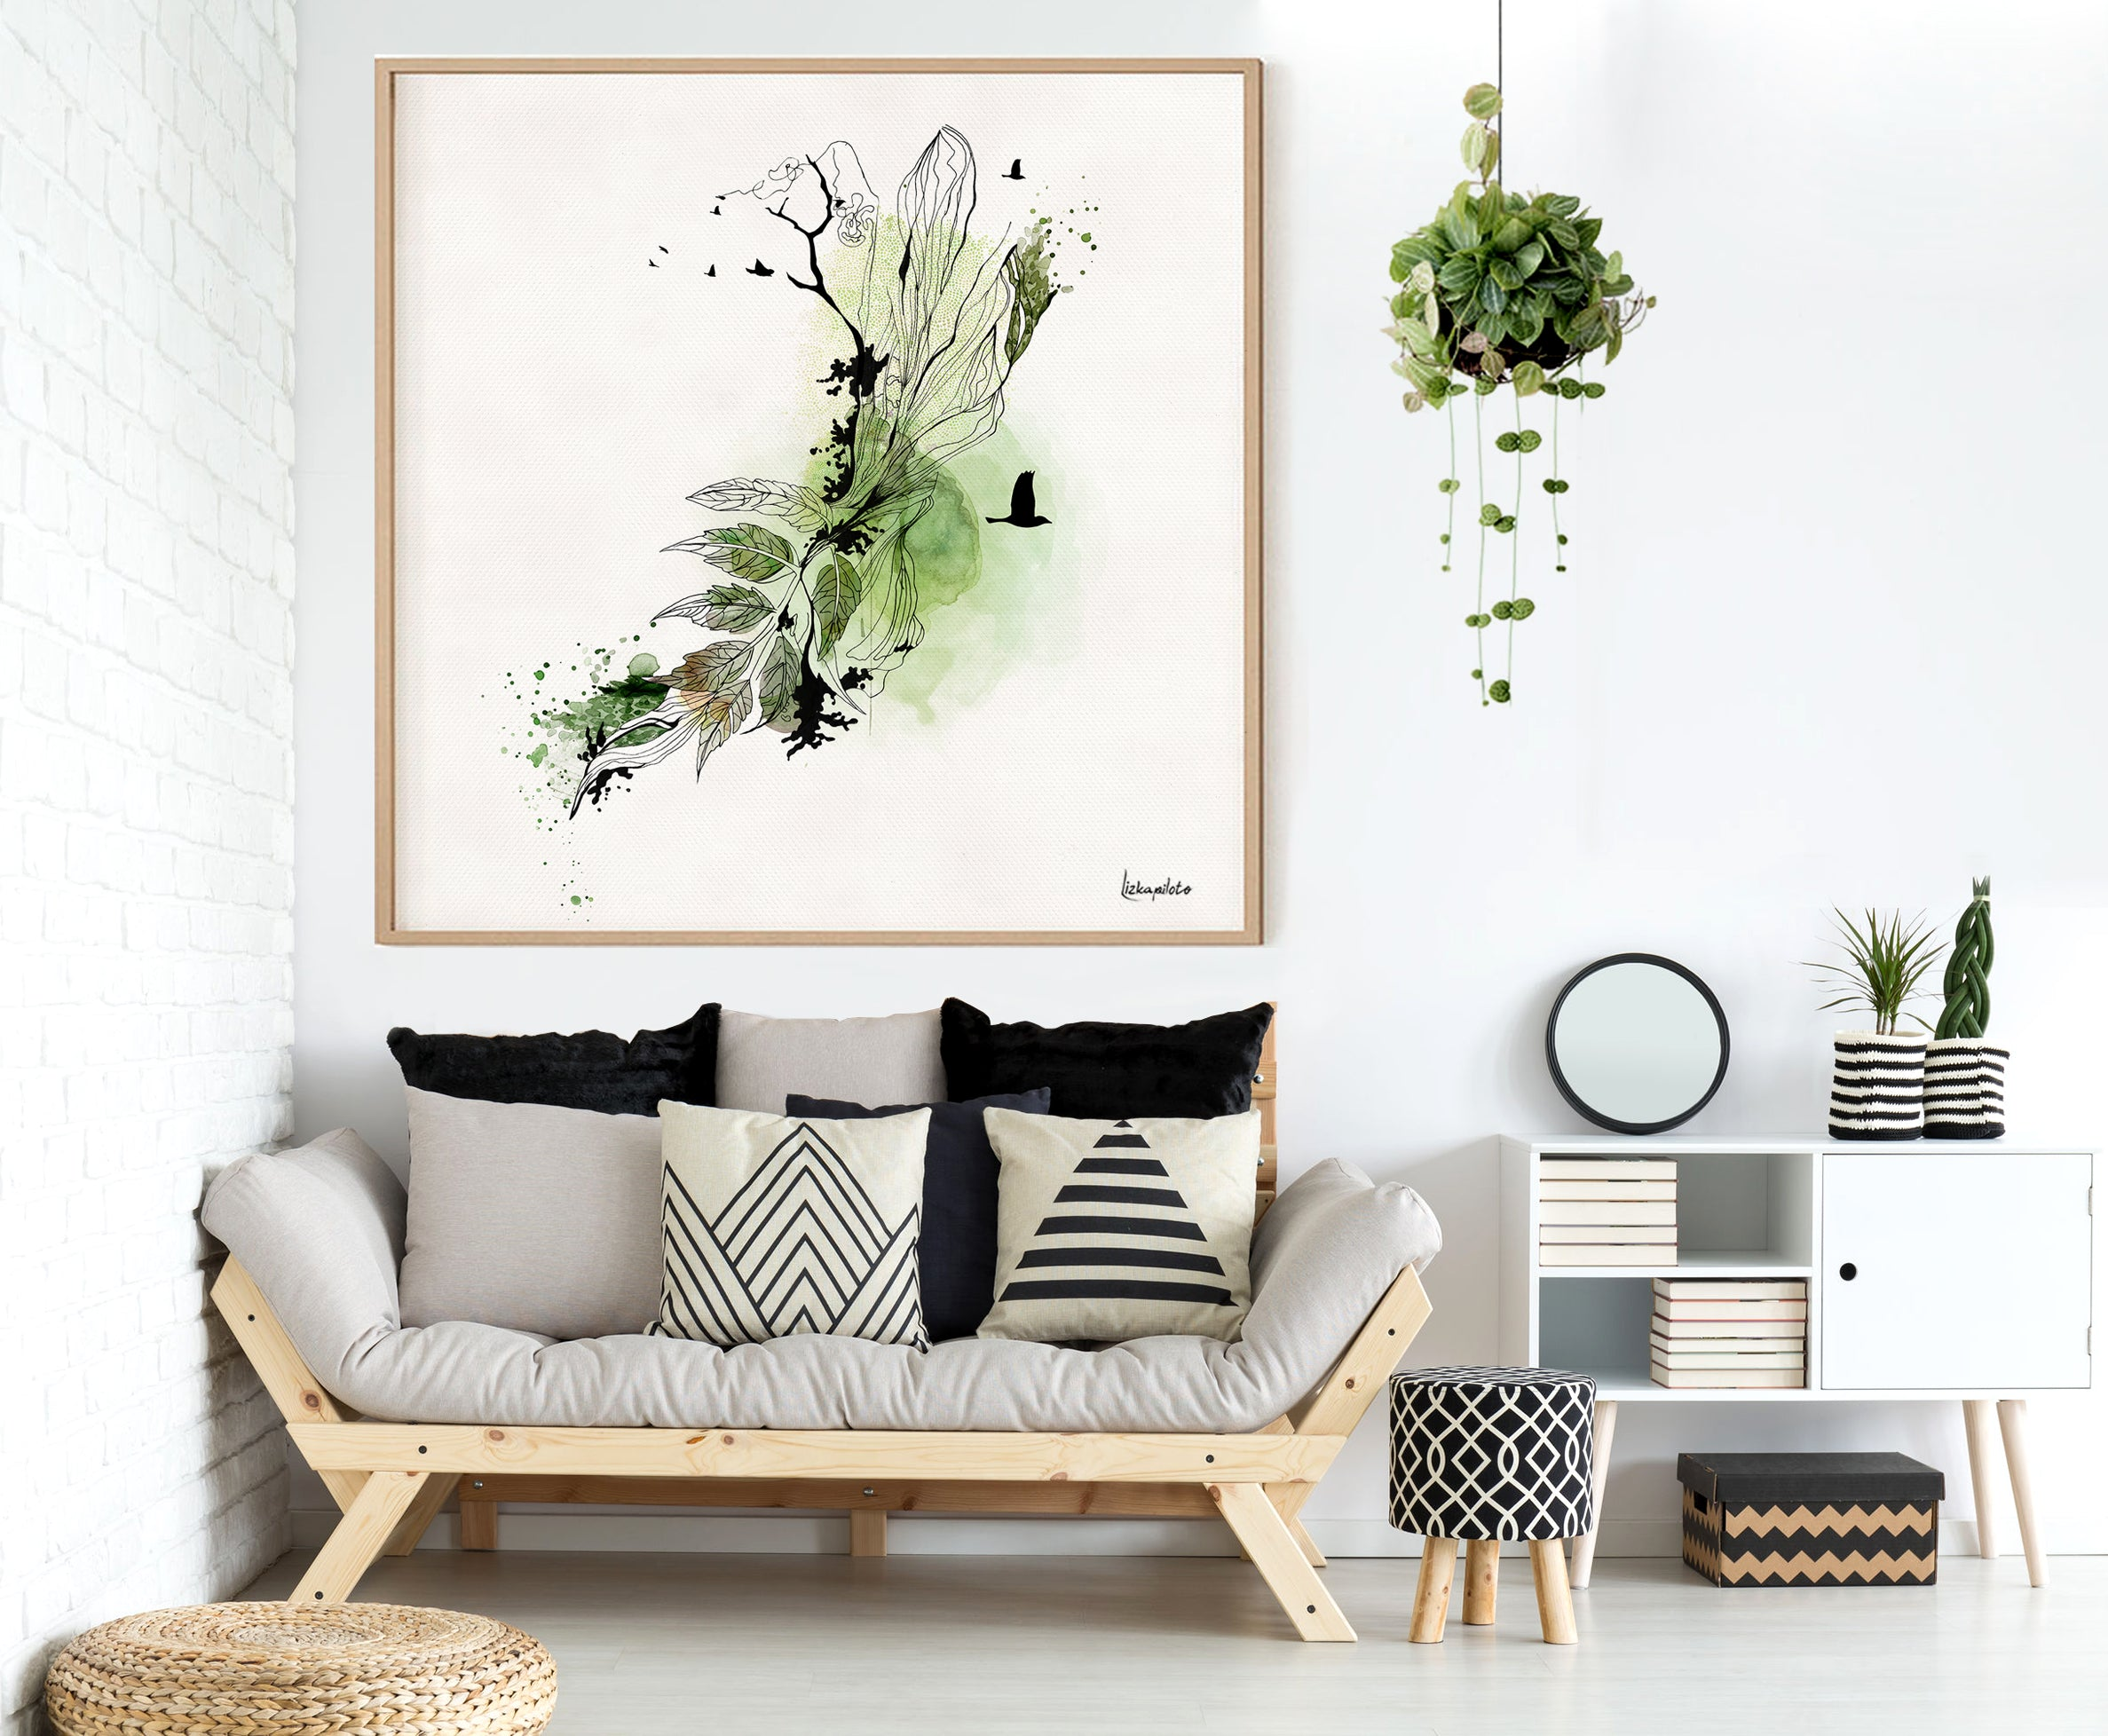 Green and black painting on a white wall in living room